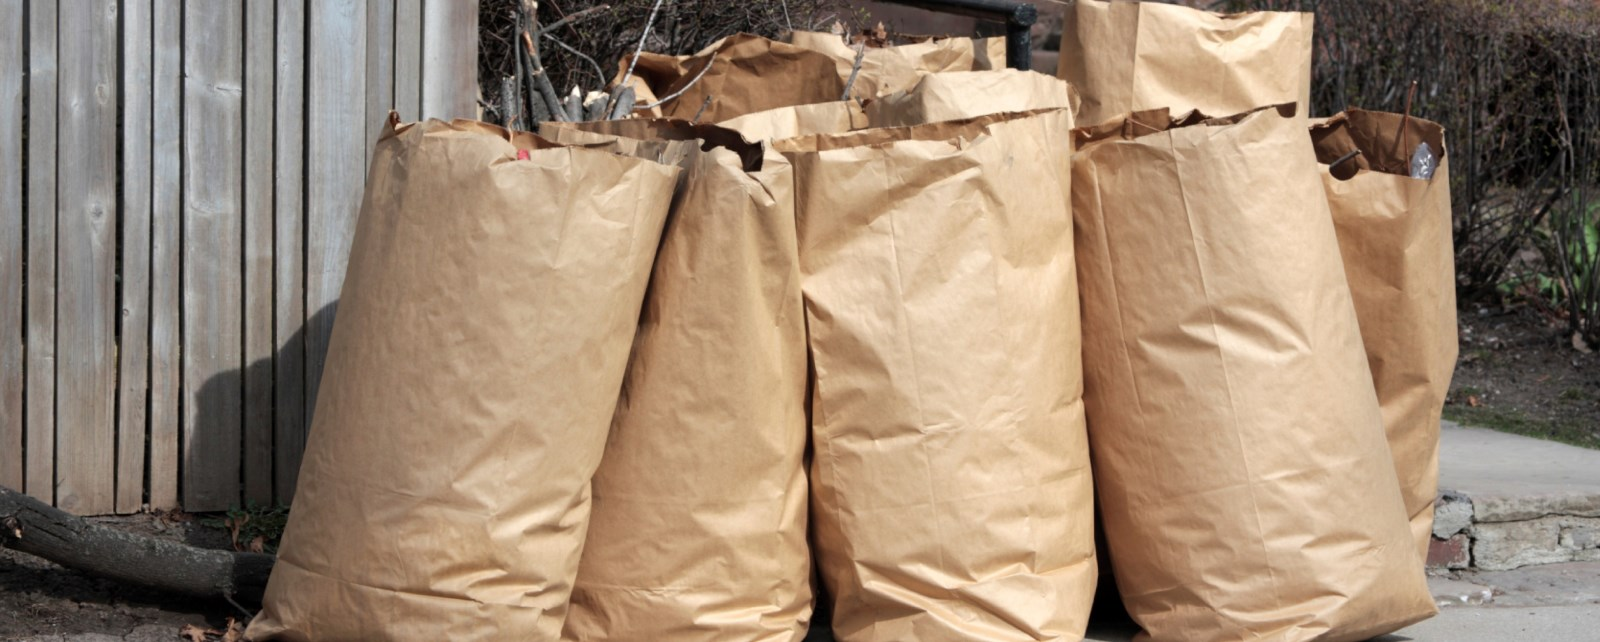 Picture of yard waste bags